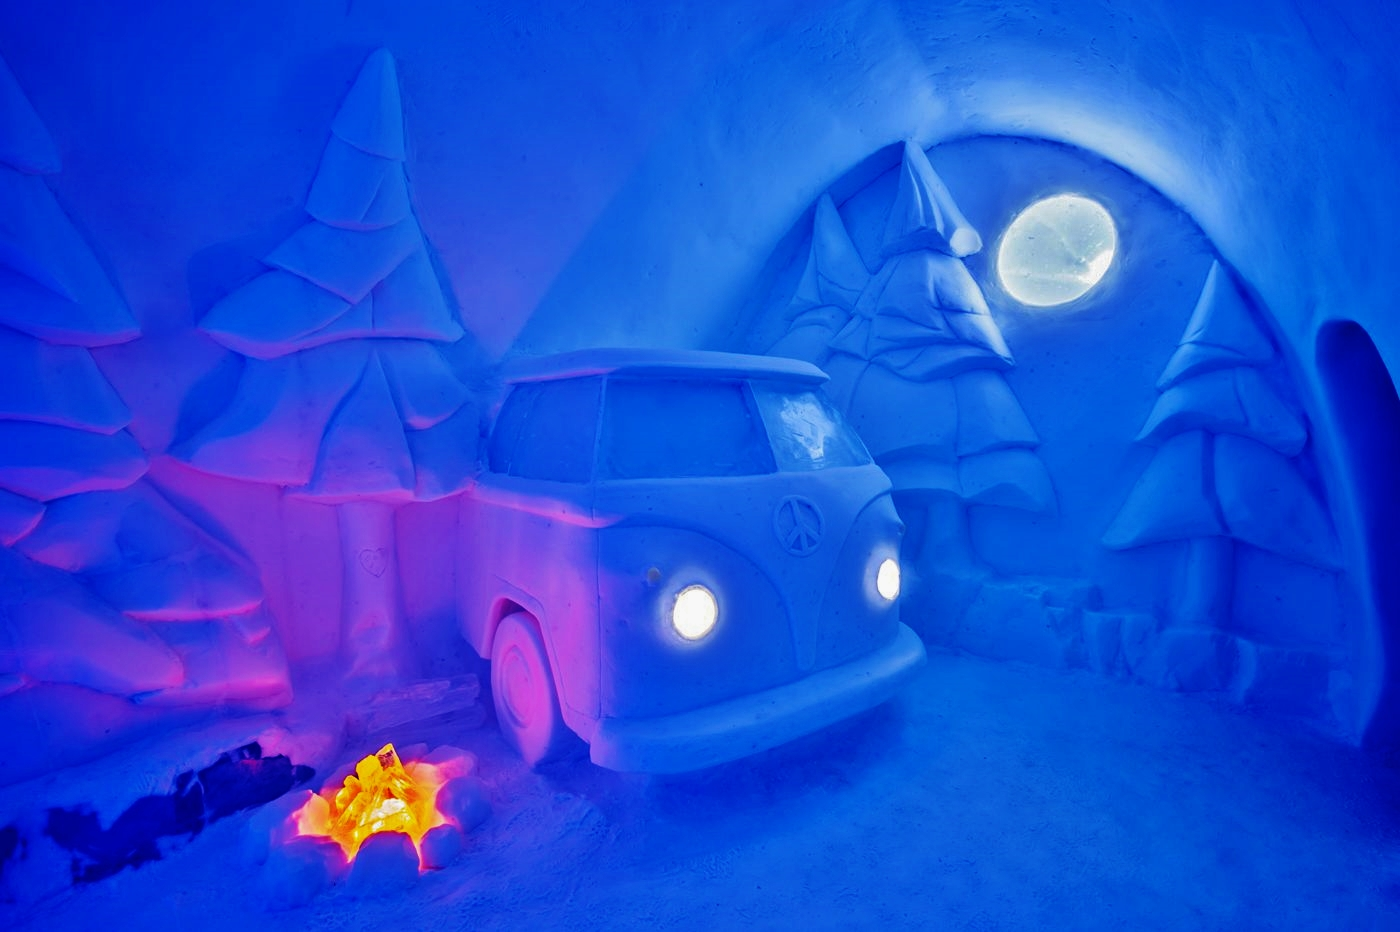 This year the Ice Hotel has a room that contains a VW camper van made from ice. Only about $1,250 USD's a night. Credit: icehotel.com/Asaf Kliger